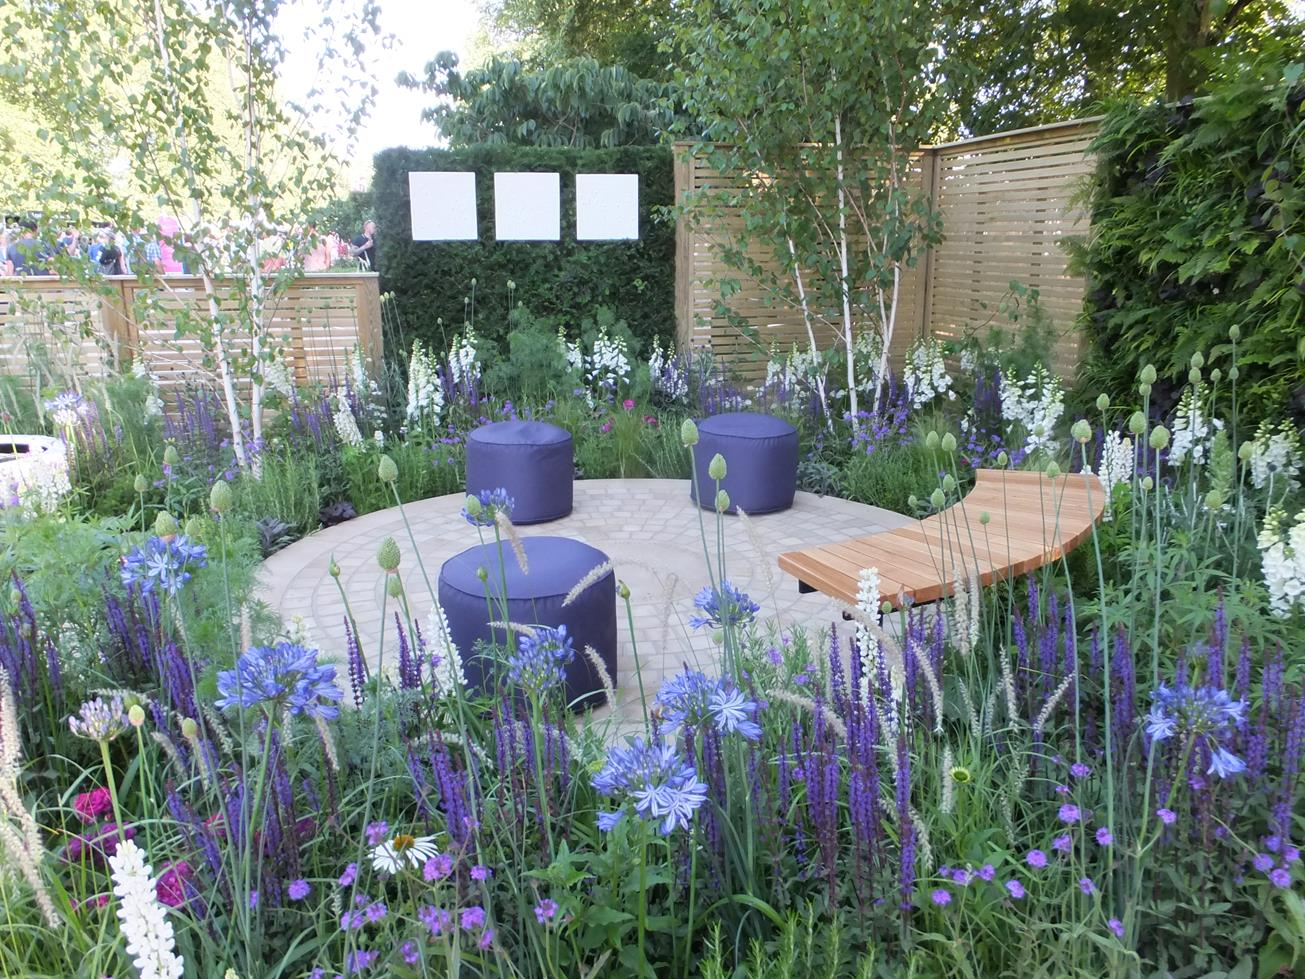 Alternative eden exotic garden hampton court show gardens 2015 - Hampton court flower show ...